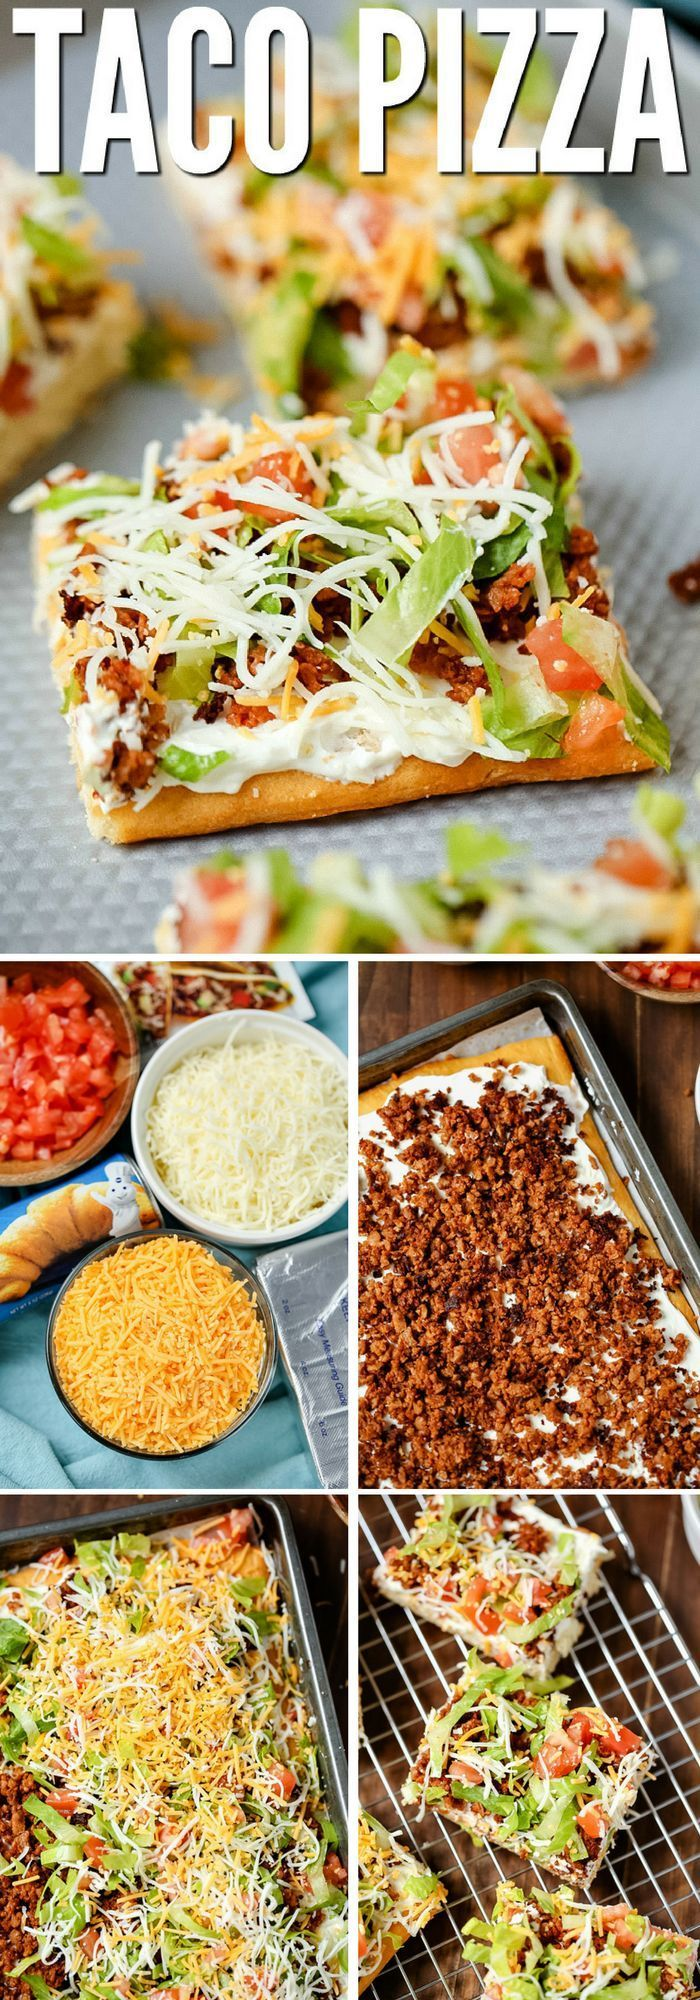 Easy family meal recipes